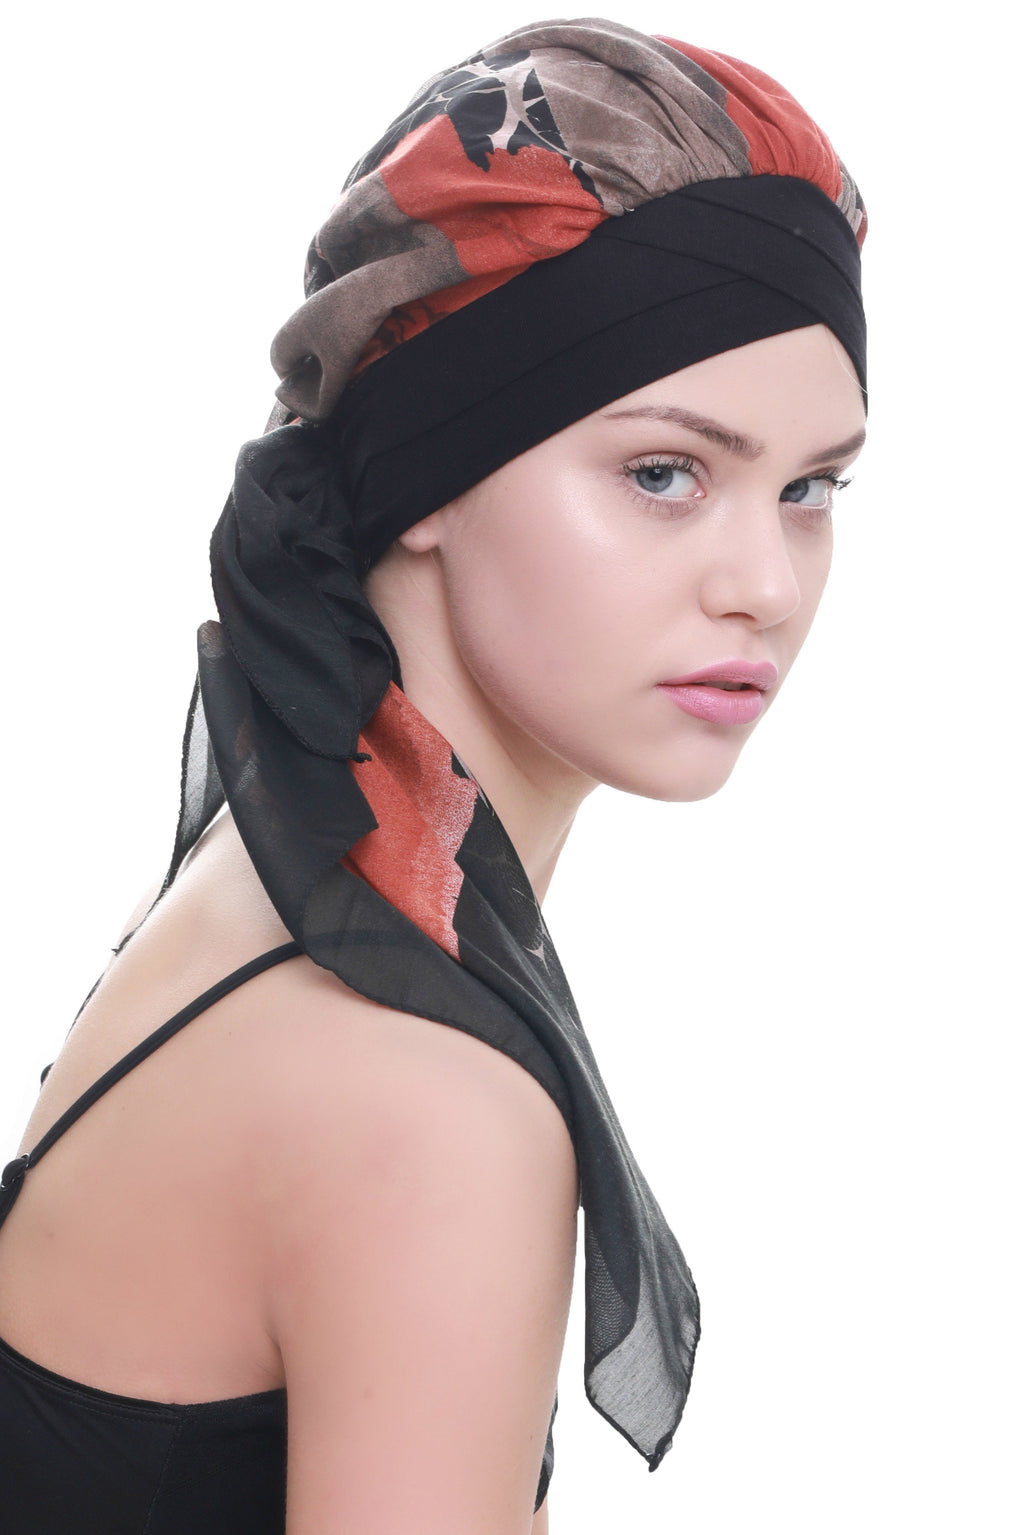 Deresina W cap with attached chemo headscarf black mink abstract design